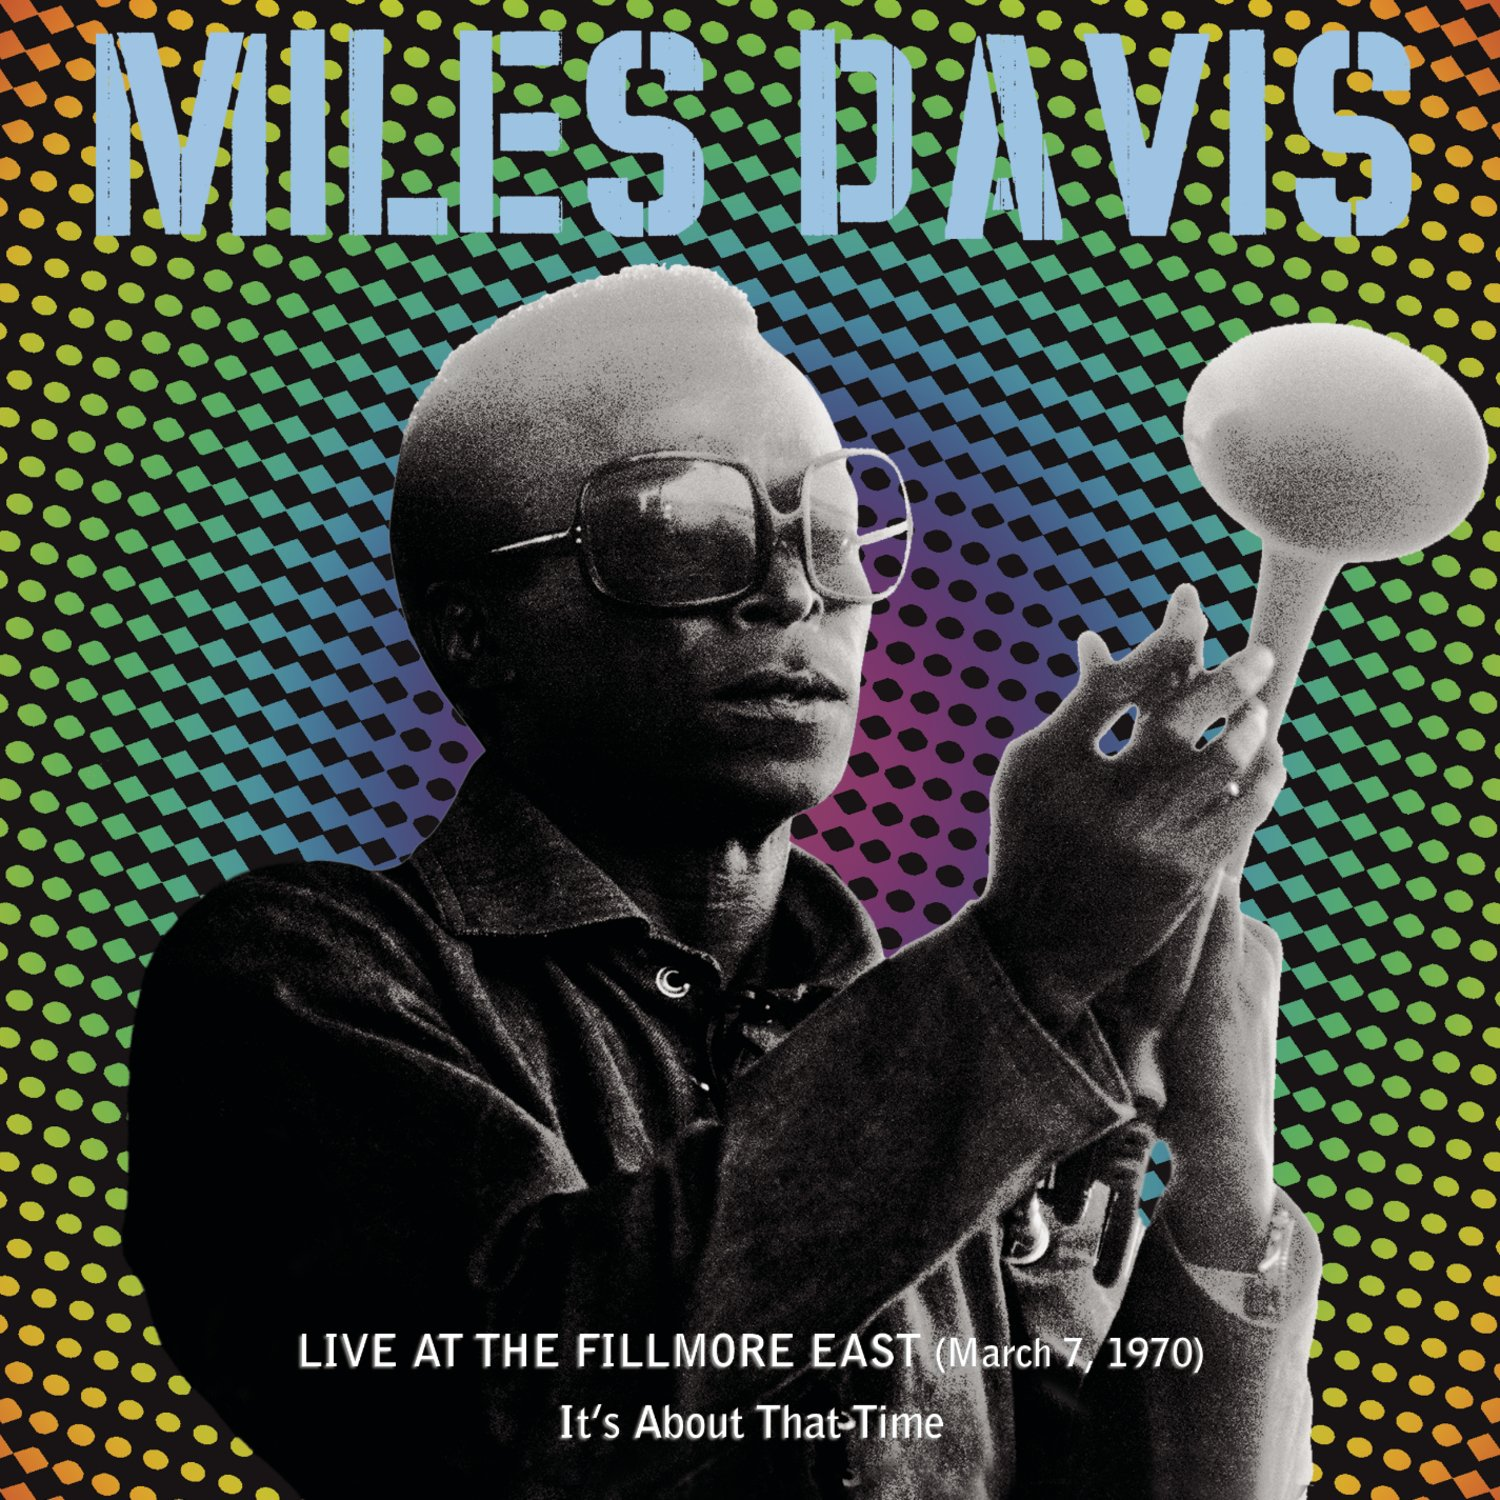 Live at the Fillmore East (March 7, 1970): It's About That Time